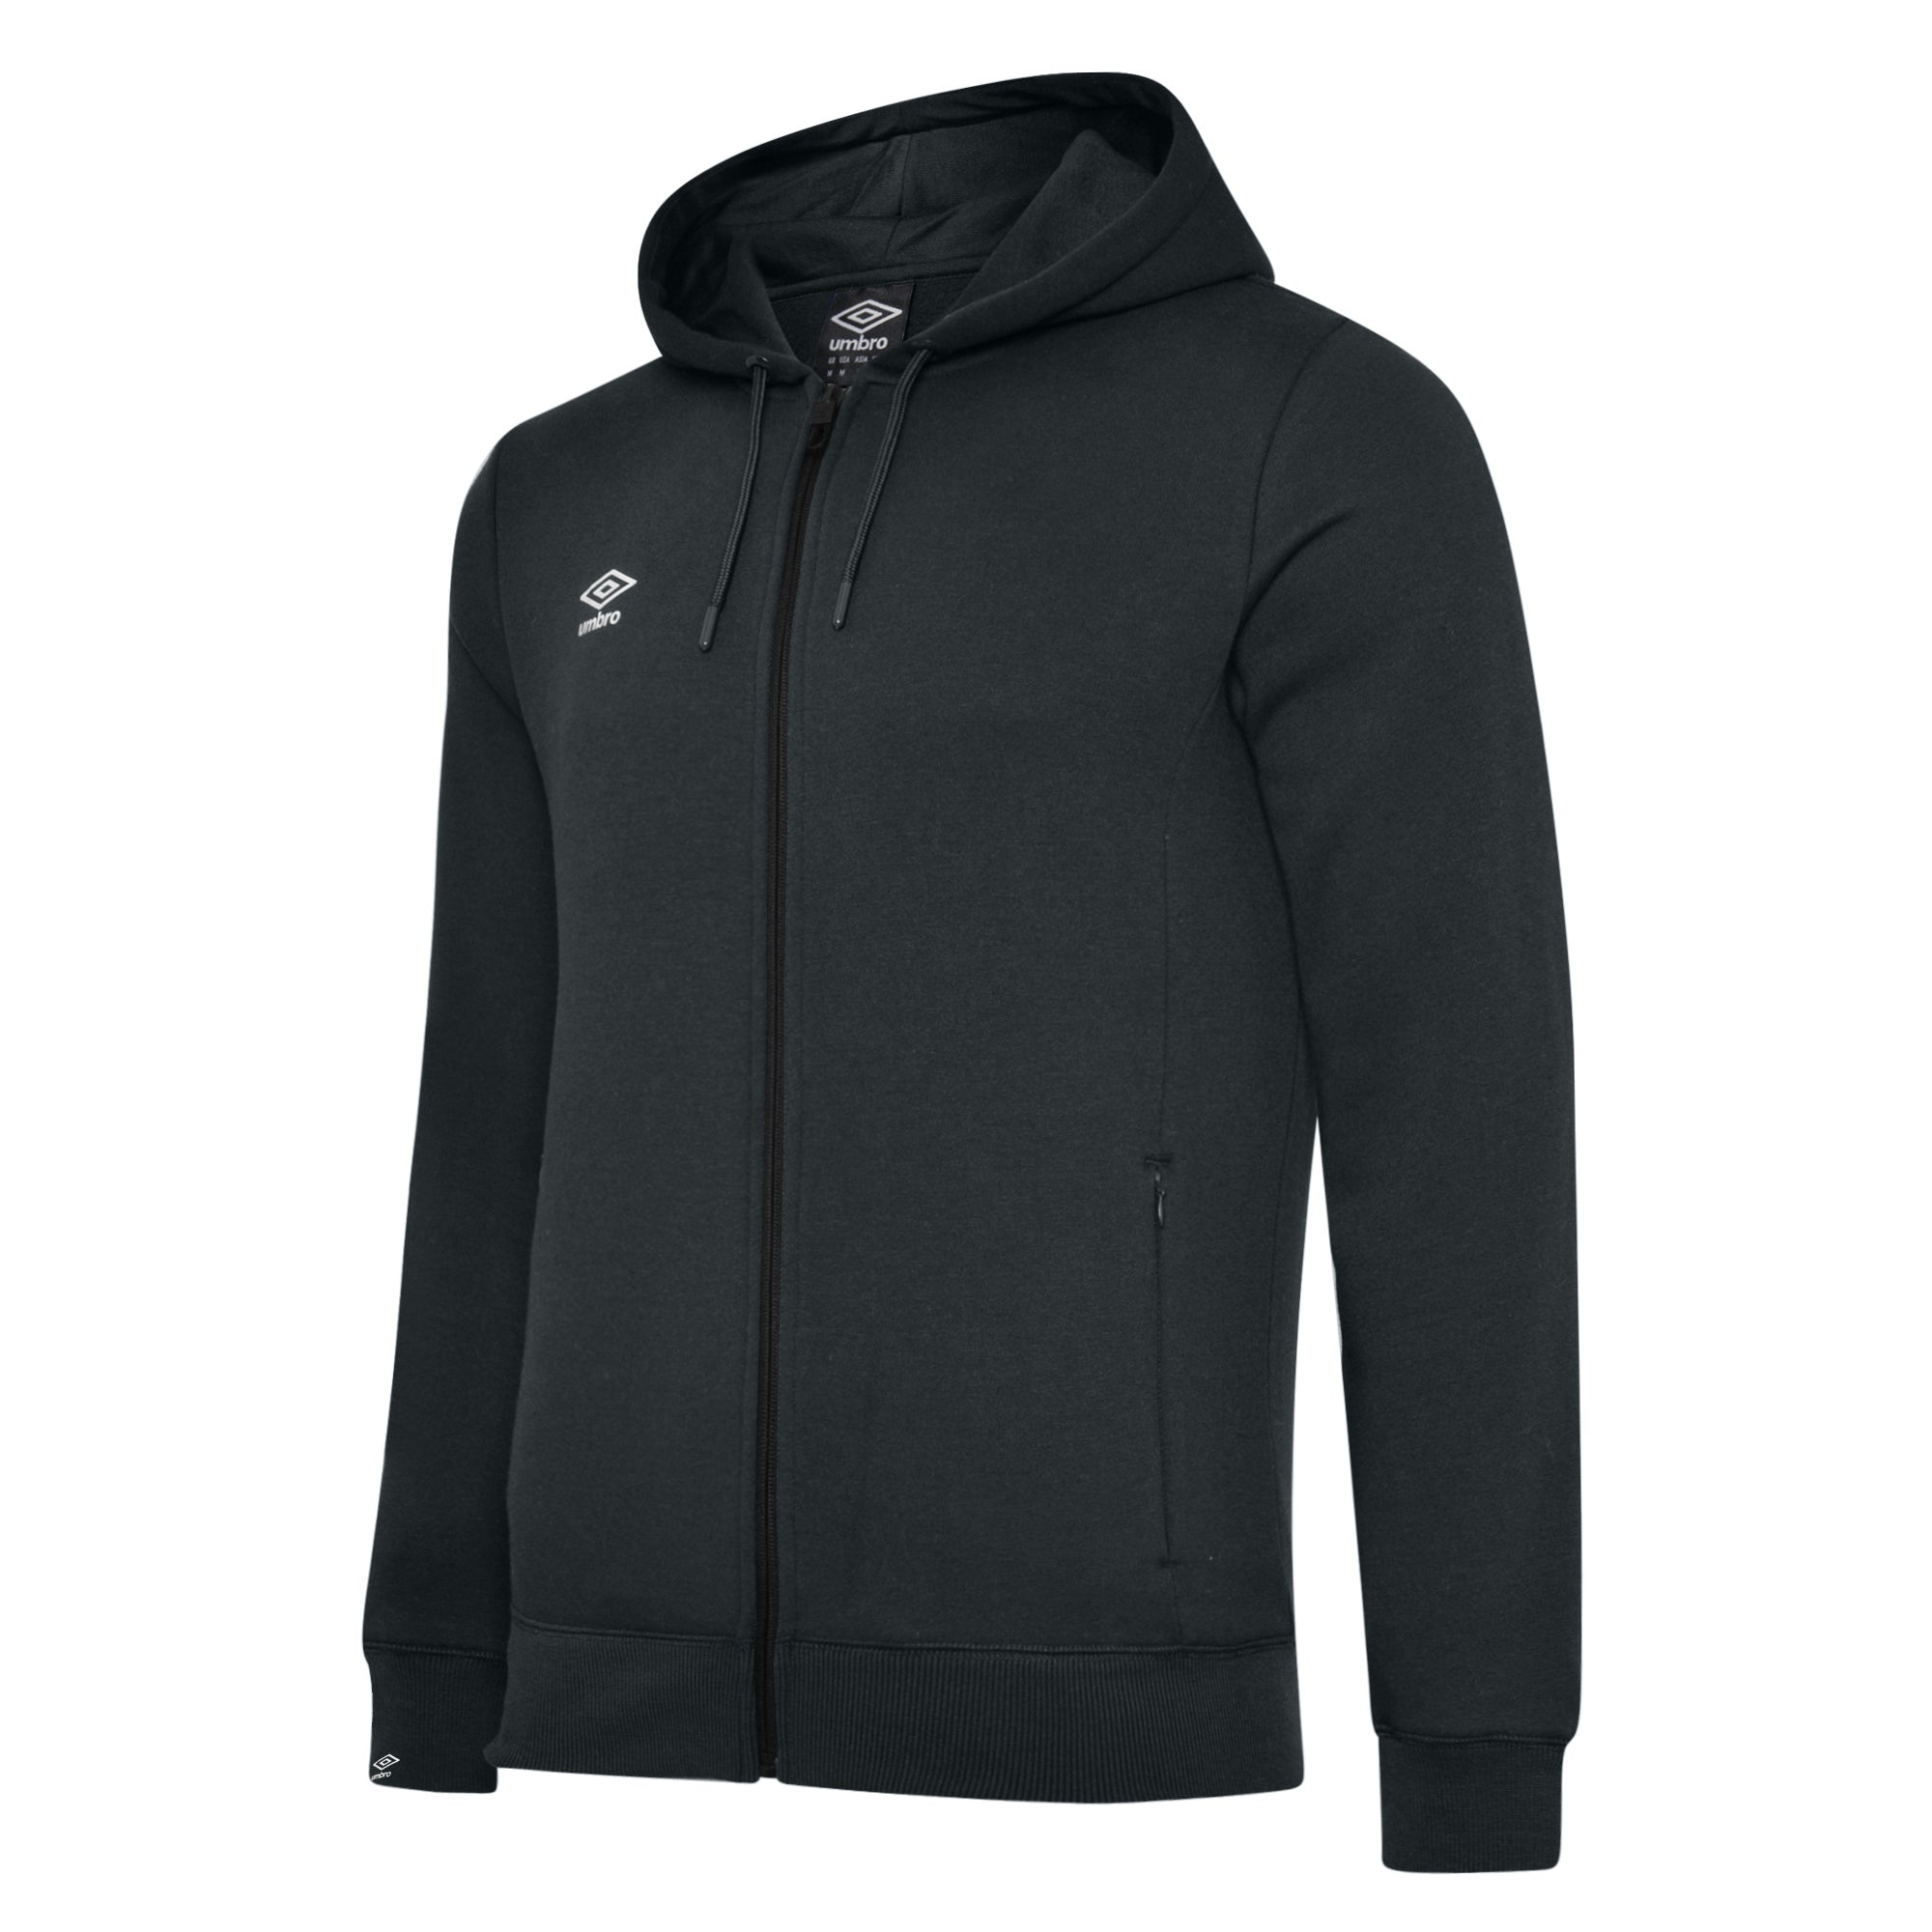 Umbro Club Leisure Zipped Hoody - Black/White